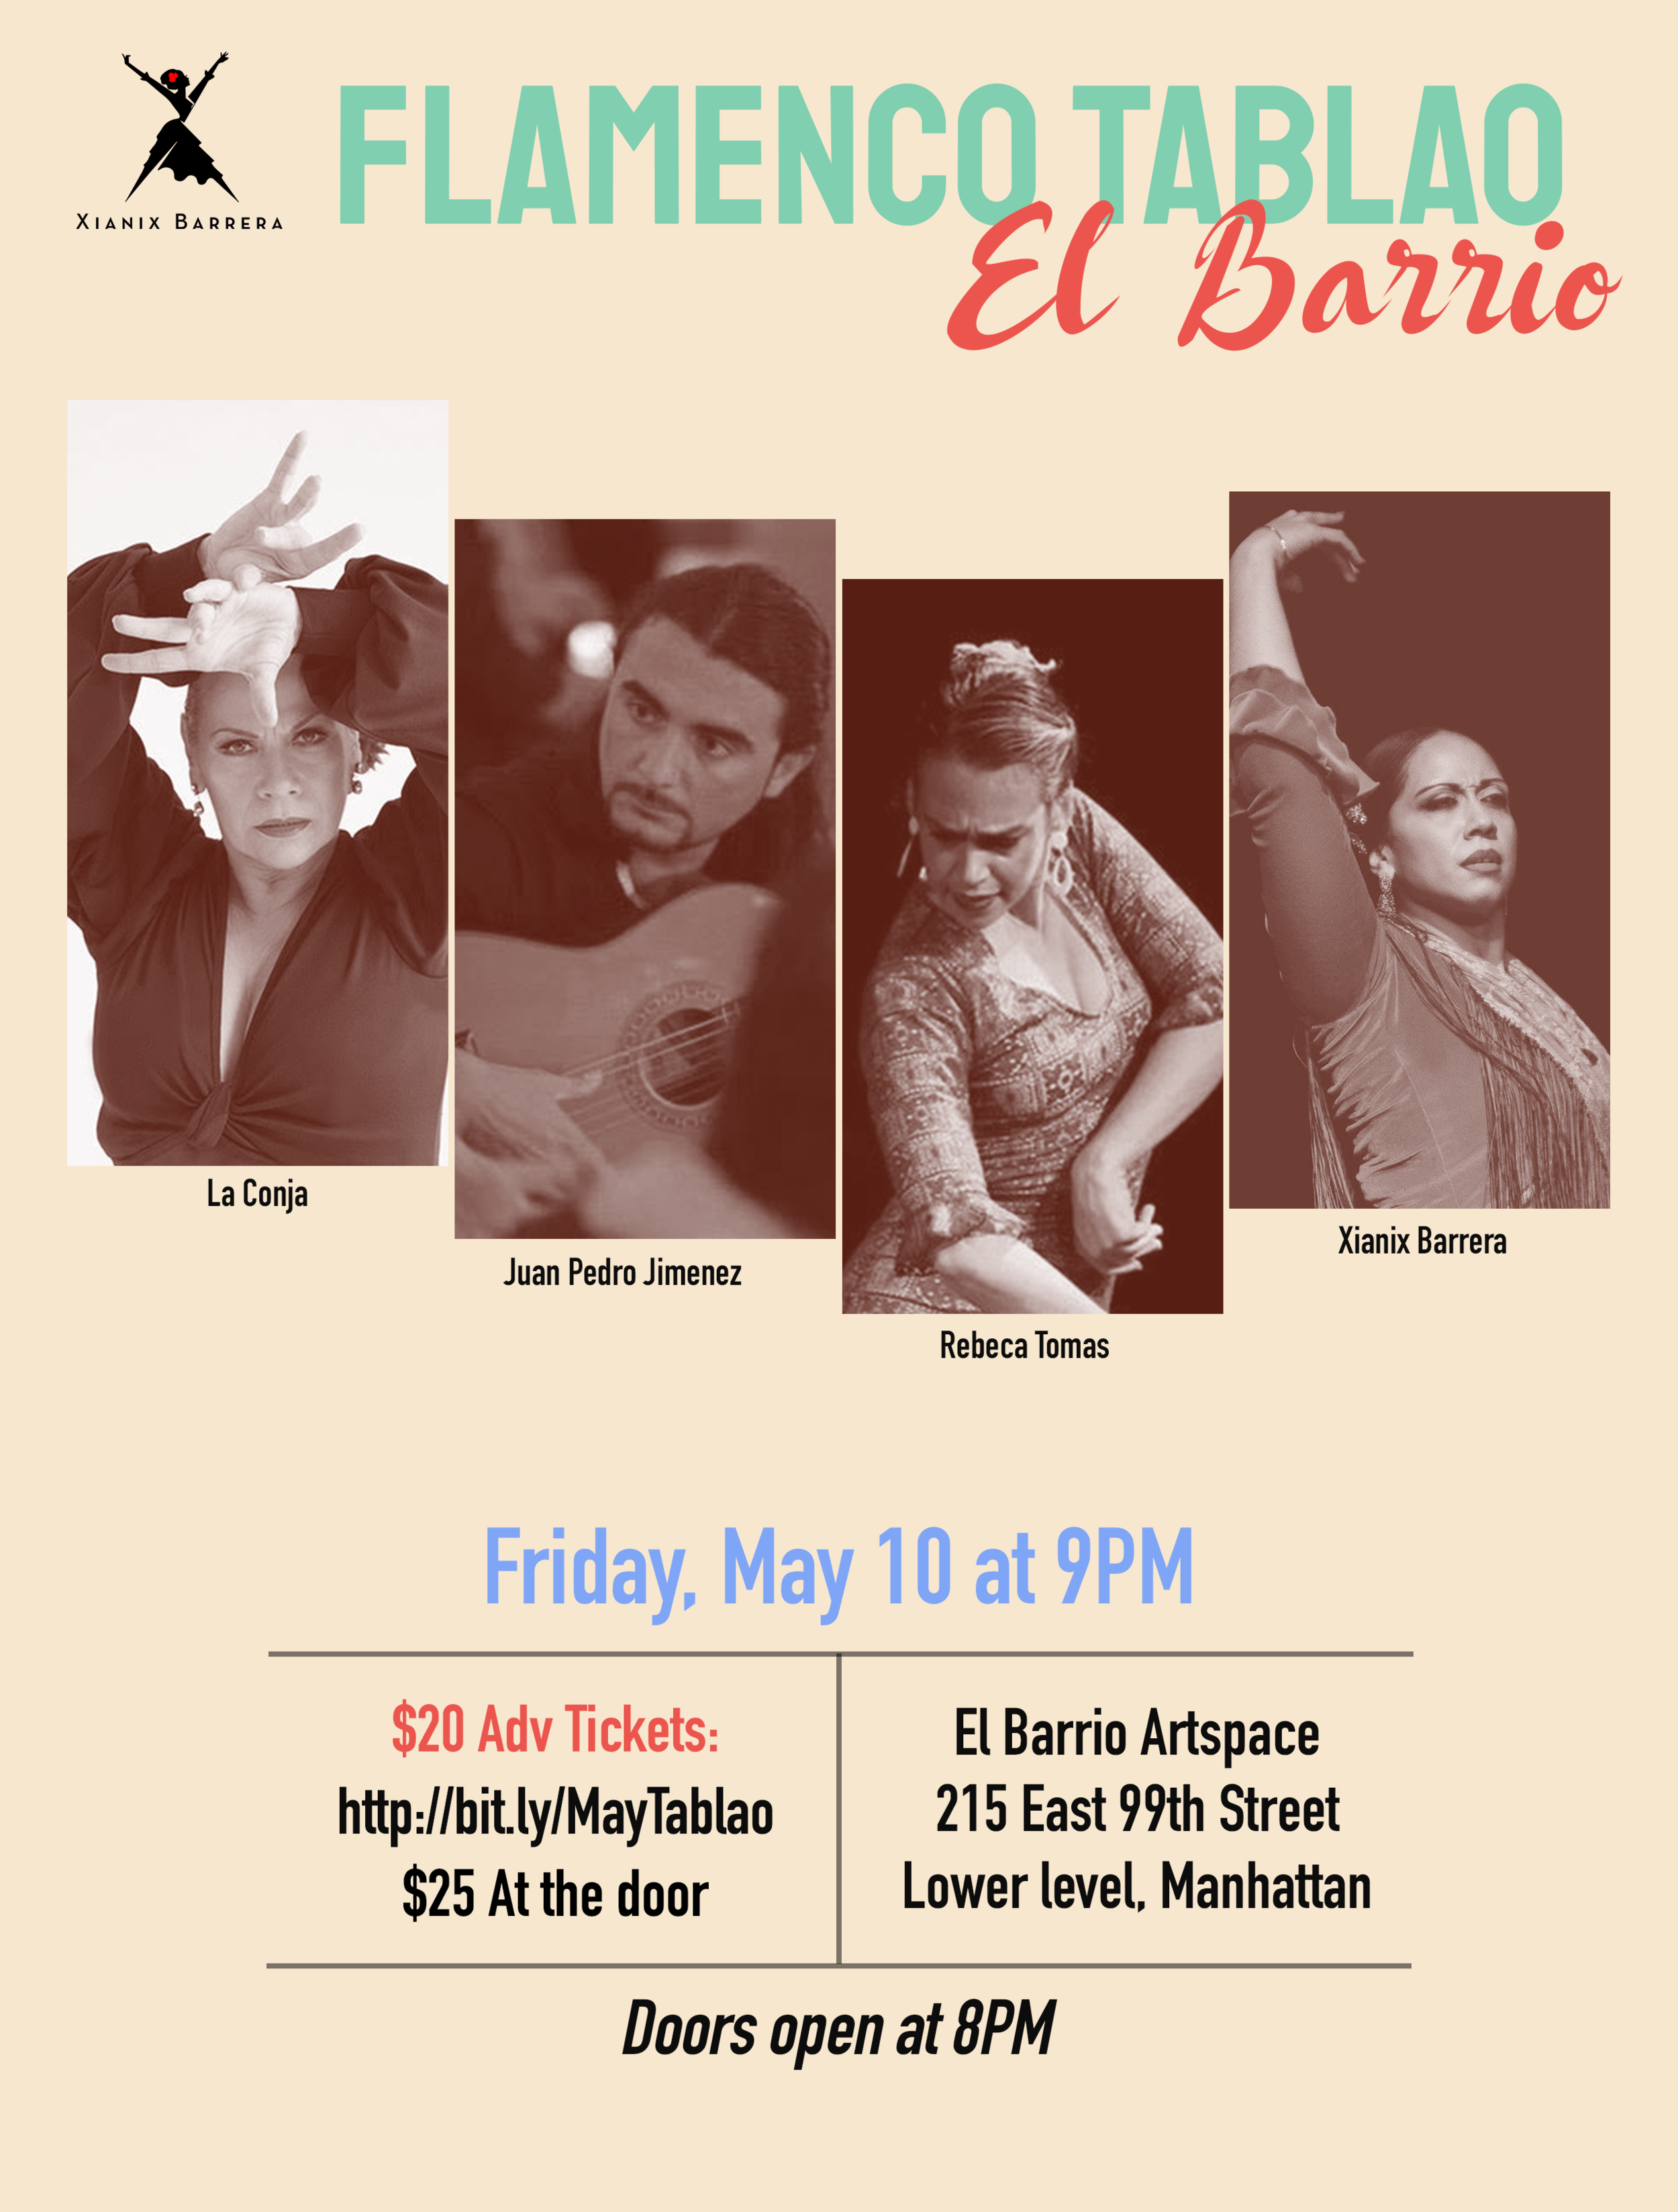 Friday, May 10th - 9pmFlamenco Tablao El Barrio - featuring:La Conja, Juan Pedro Jimenez, Rebeca Tomas and Xianix Barrera